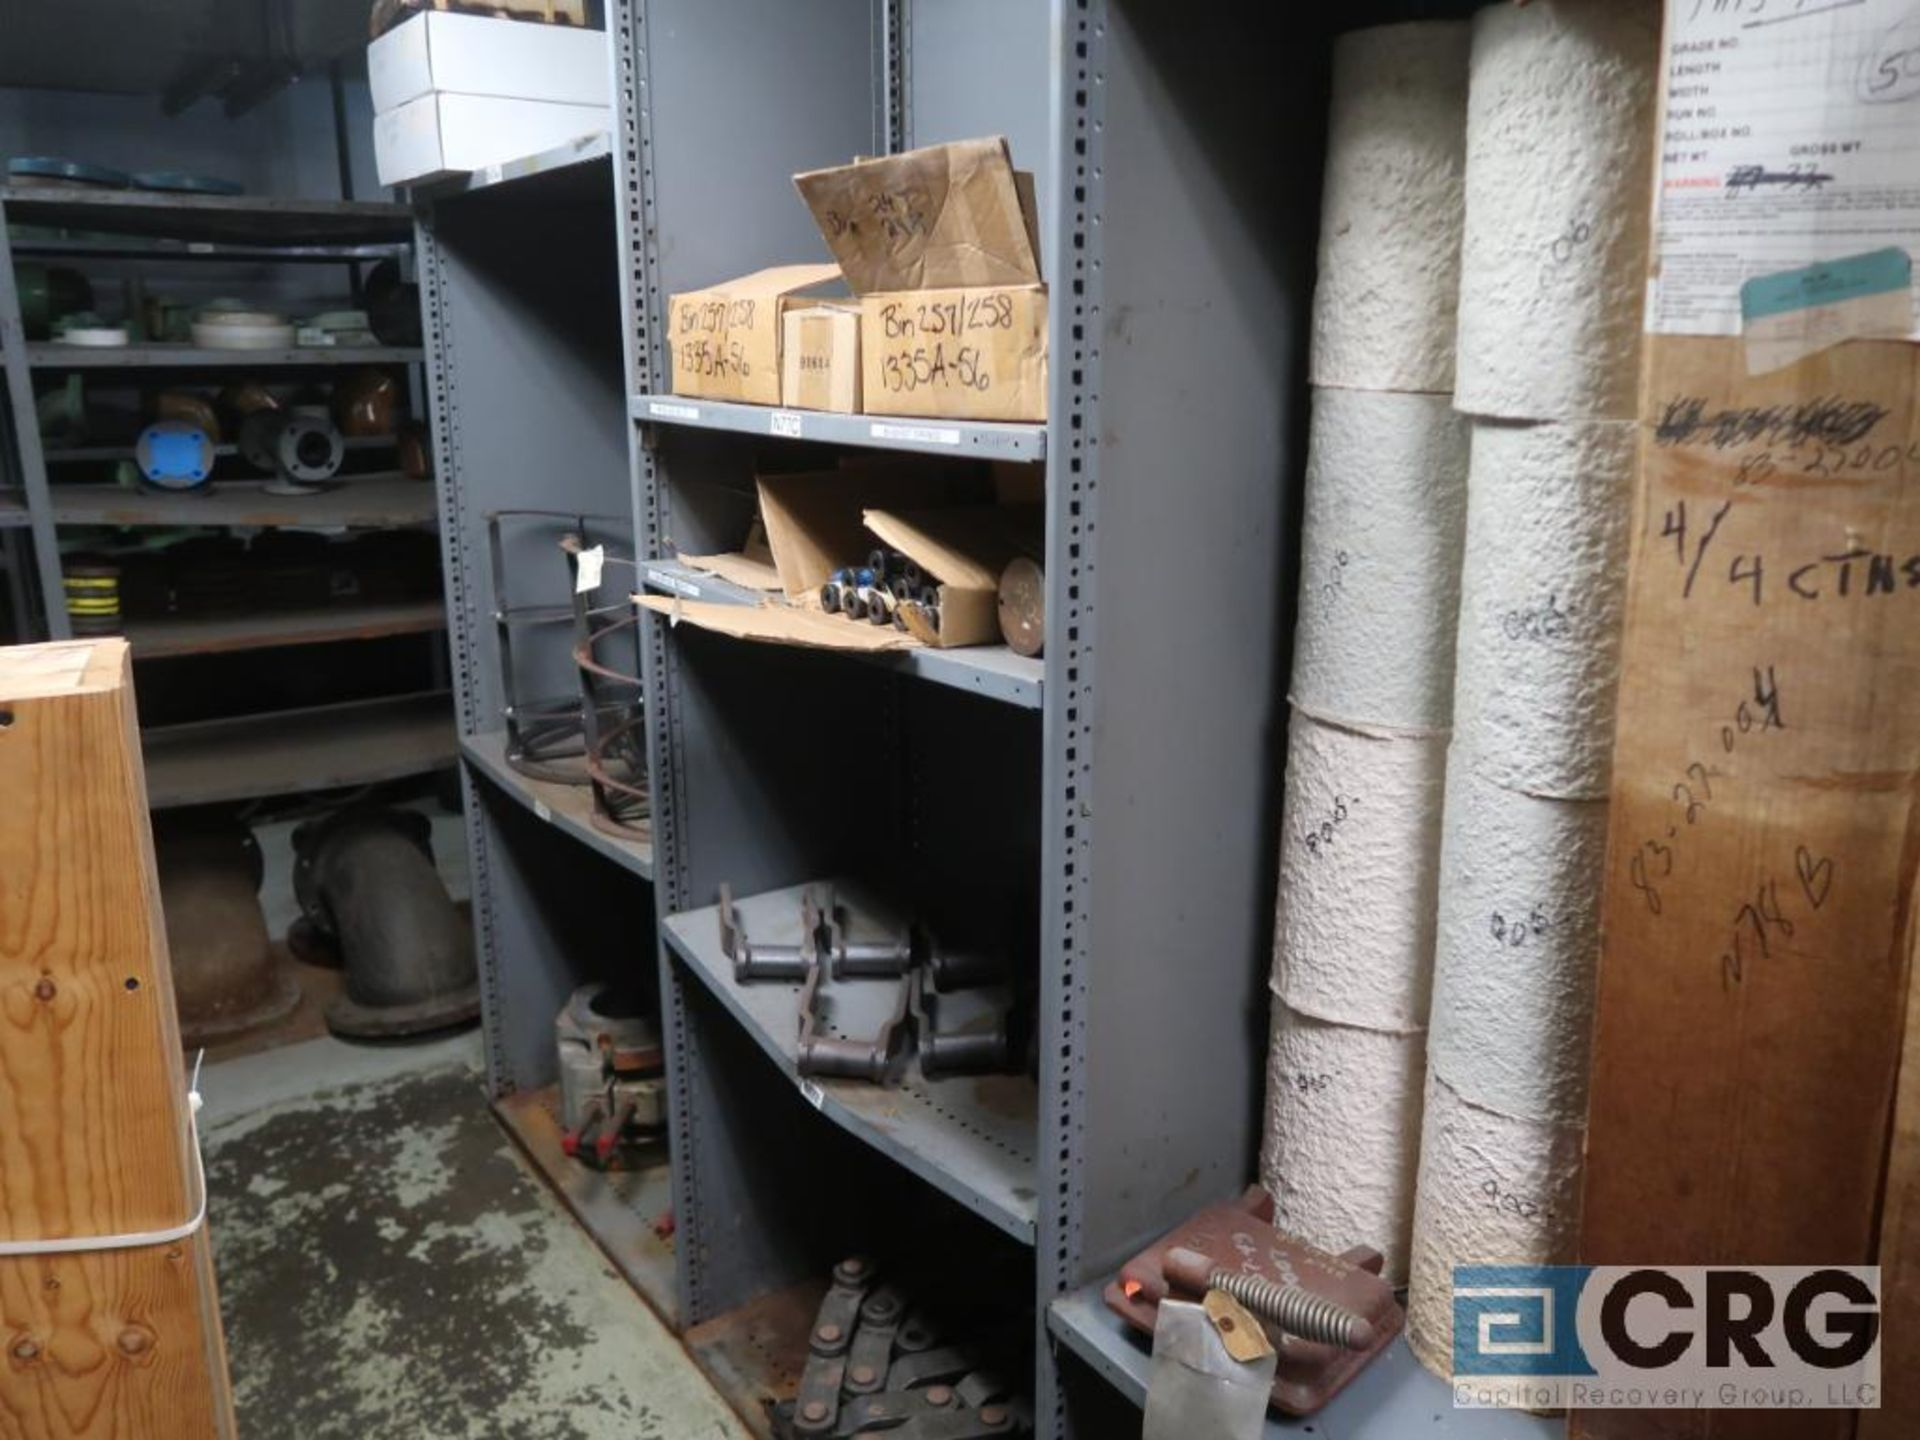 Lot of (30) sections with assorted parts including gears, chain, walves, packing, gaskets, and - Image 2 of 9